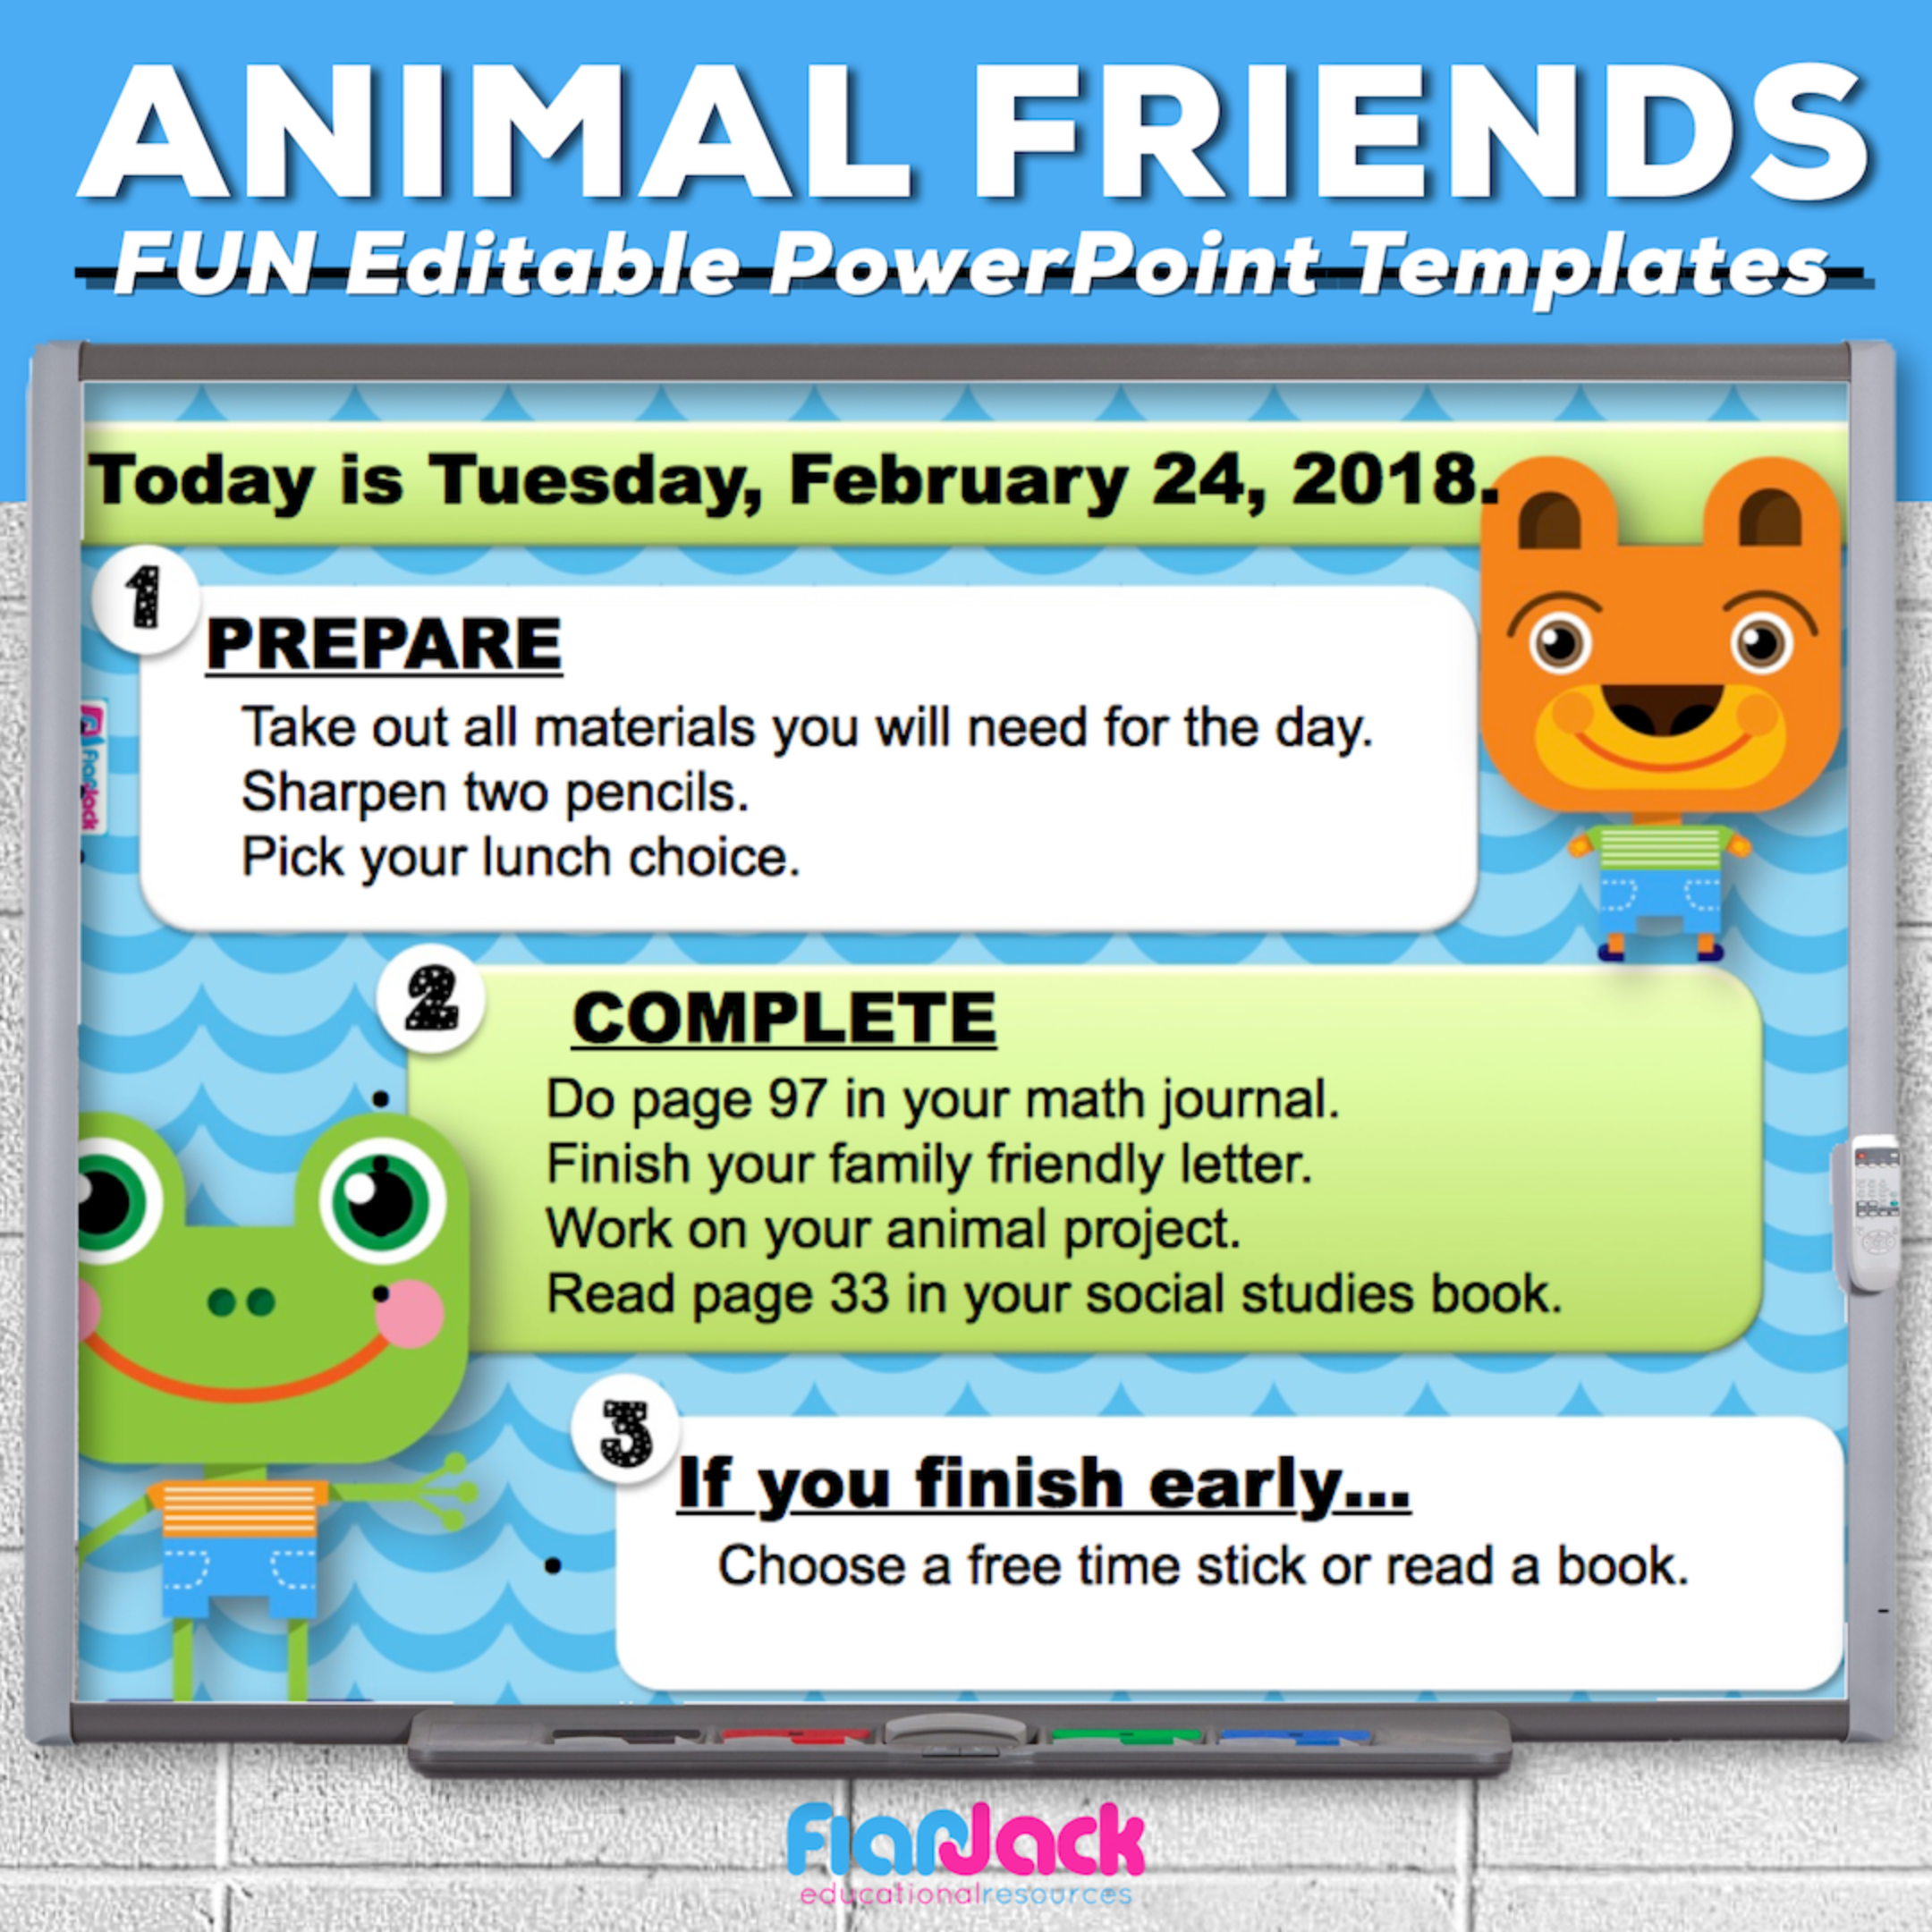 Animal Friends Editable PowerPoint Templates